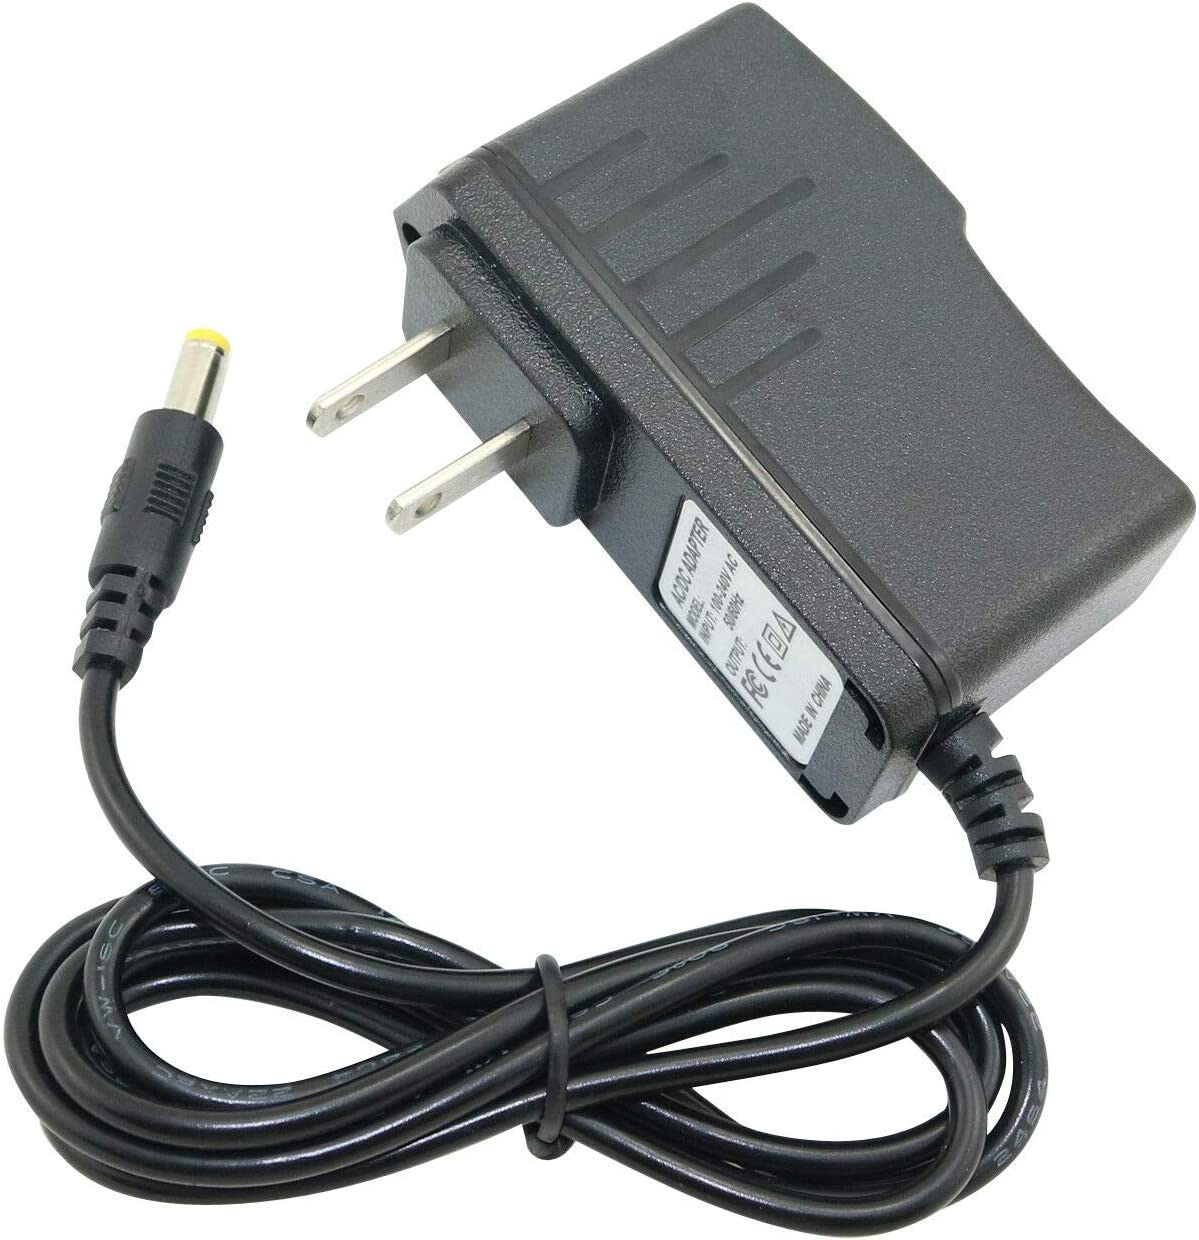 yanw AC Adapter for BELCAT DGD-515 Digital Delay Effect Pedal Power Supply Cord